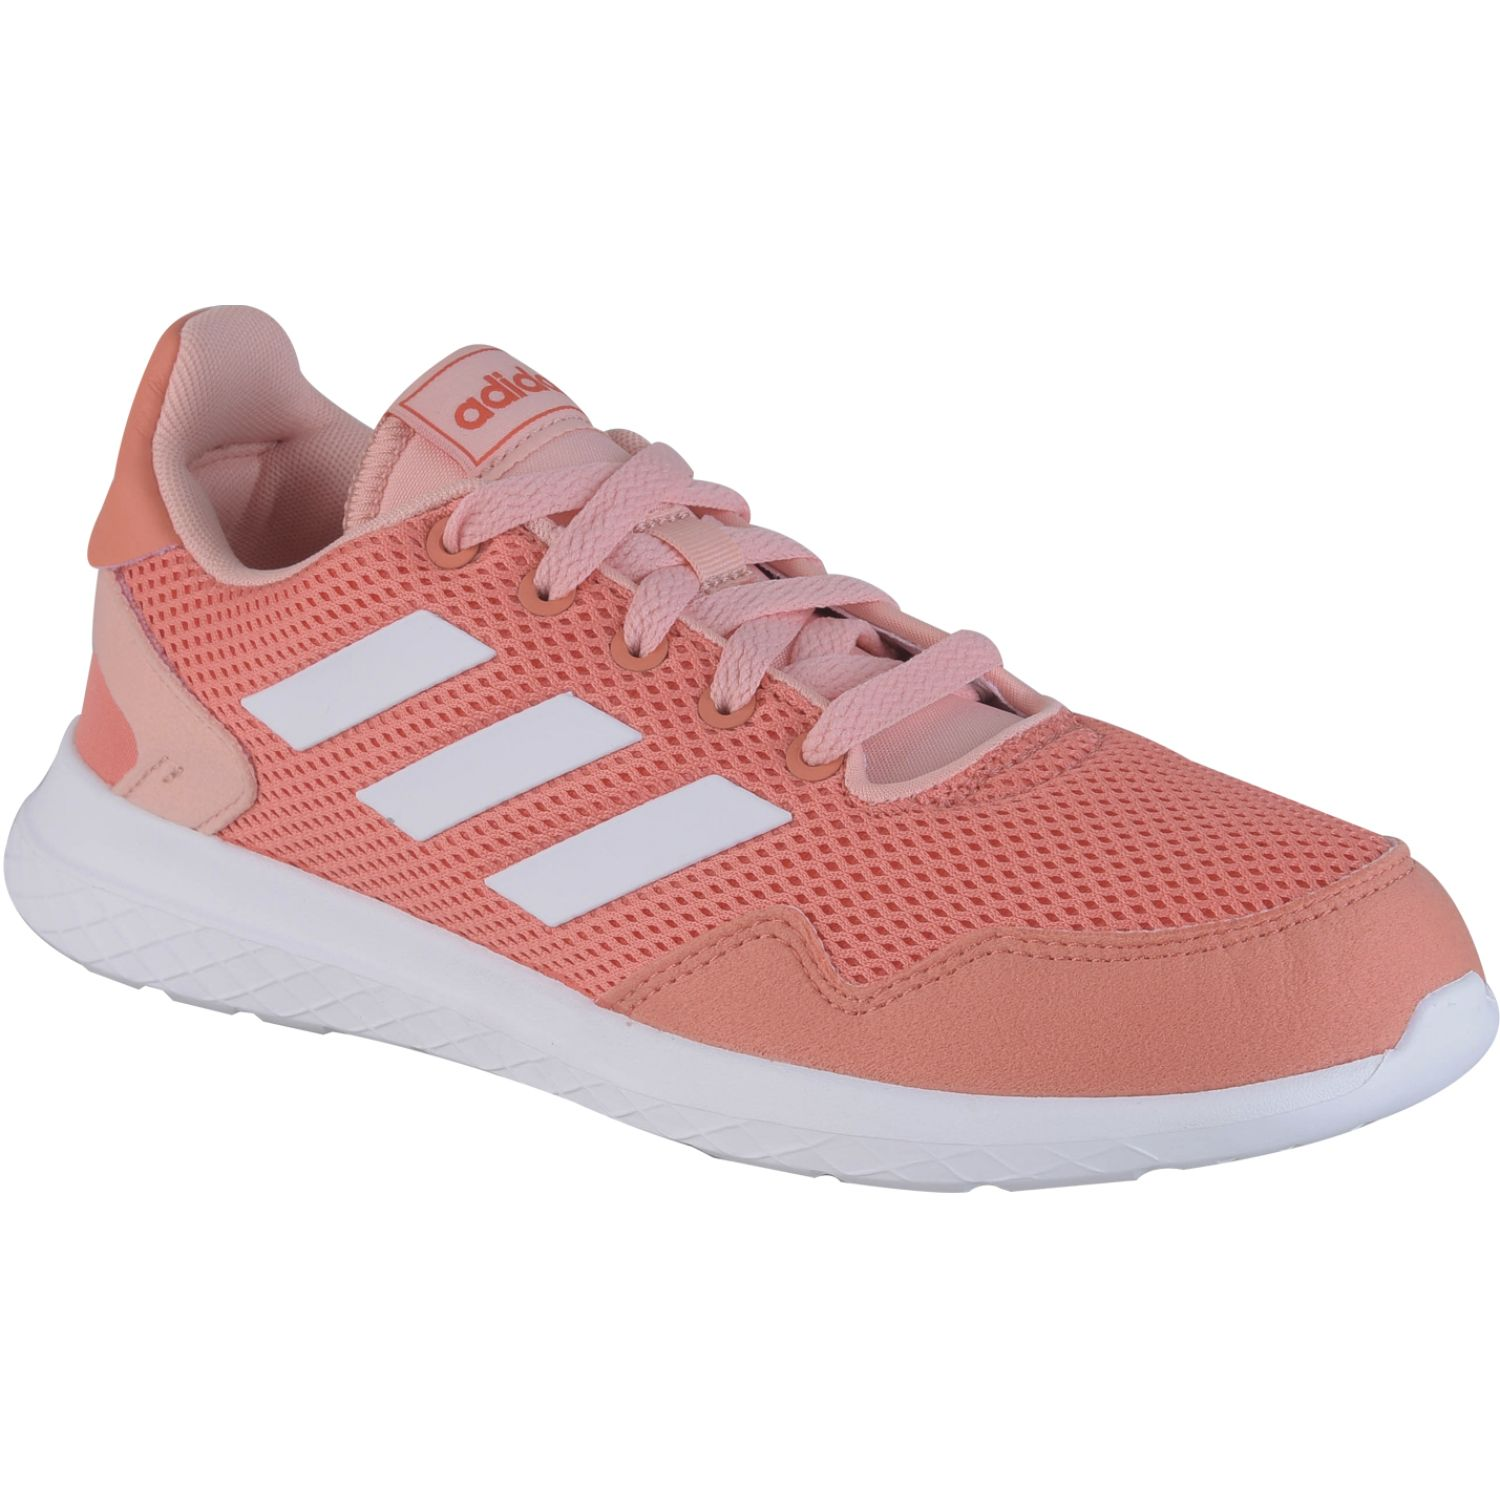 Adidas archivo k Coral Chicas